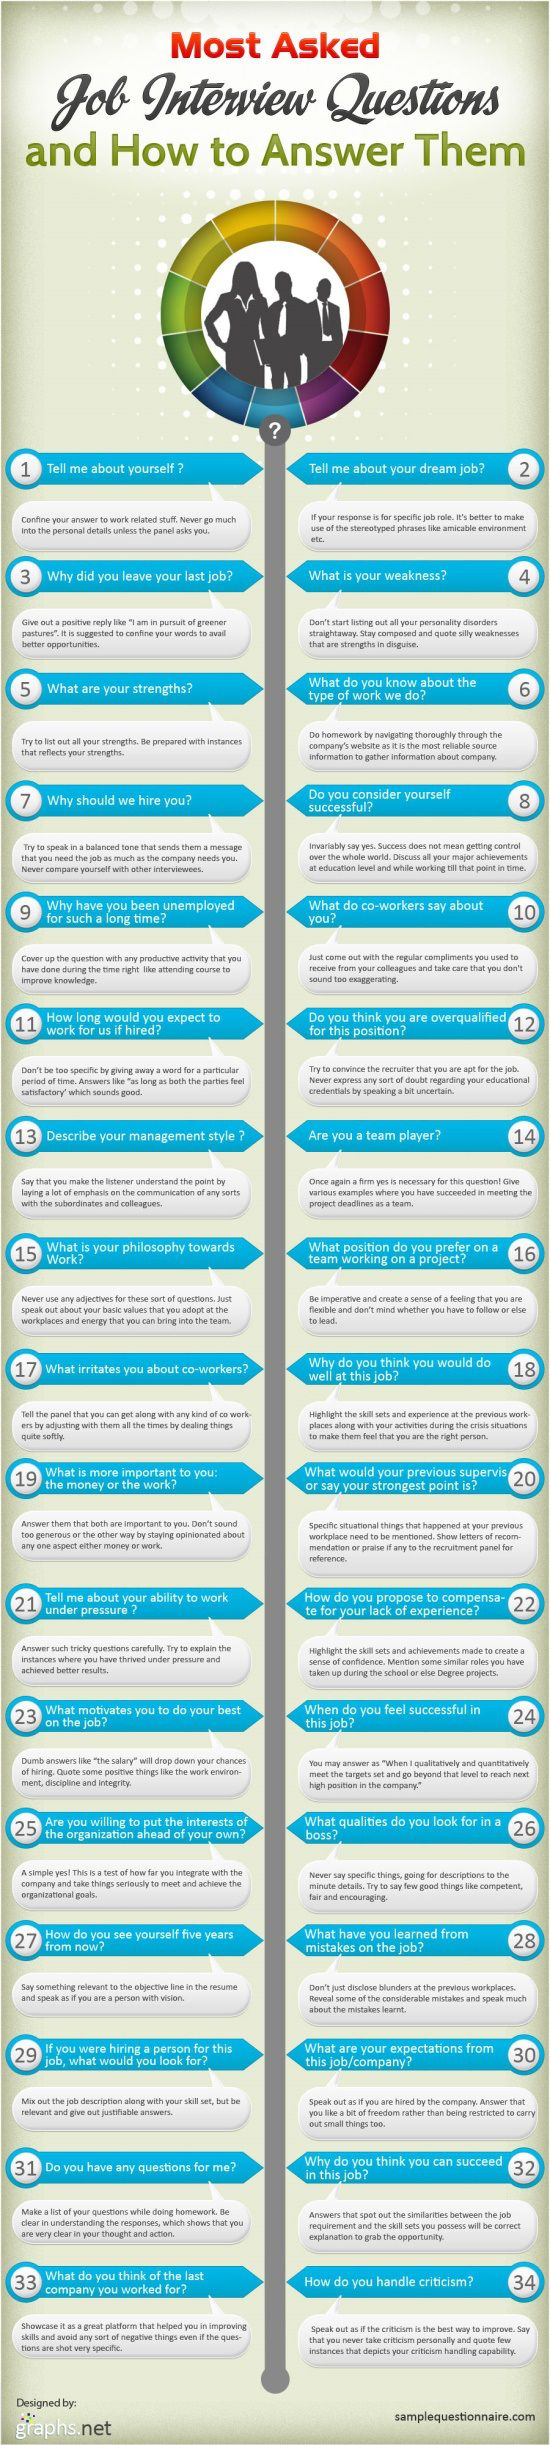 34 most asked job interview questions how to answer them bad grammar job interviews and life hacks - Nhs Interview Questions Healthcare Interview Questions And Answers